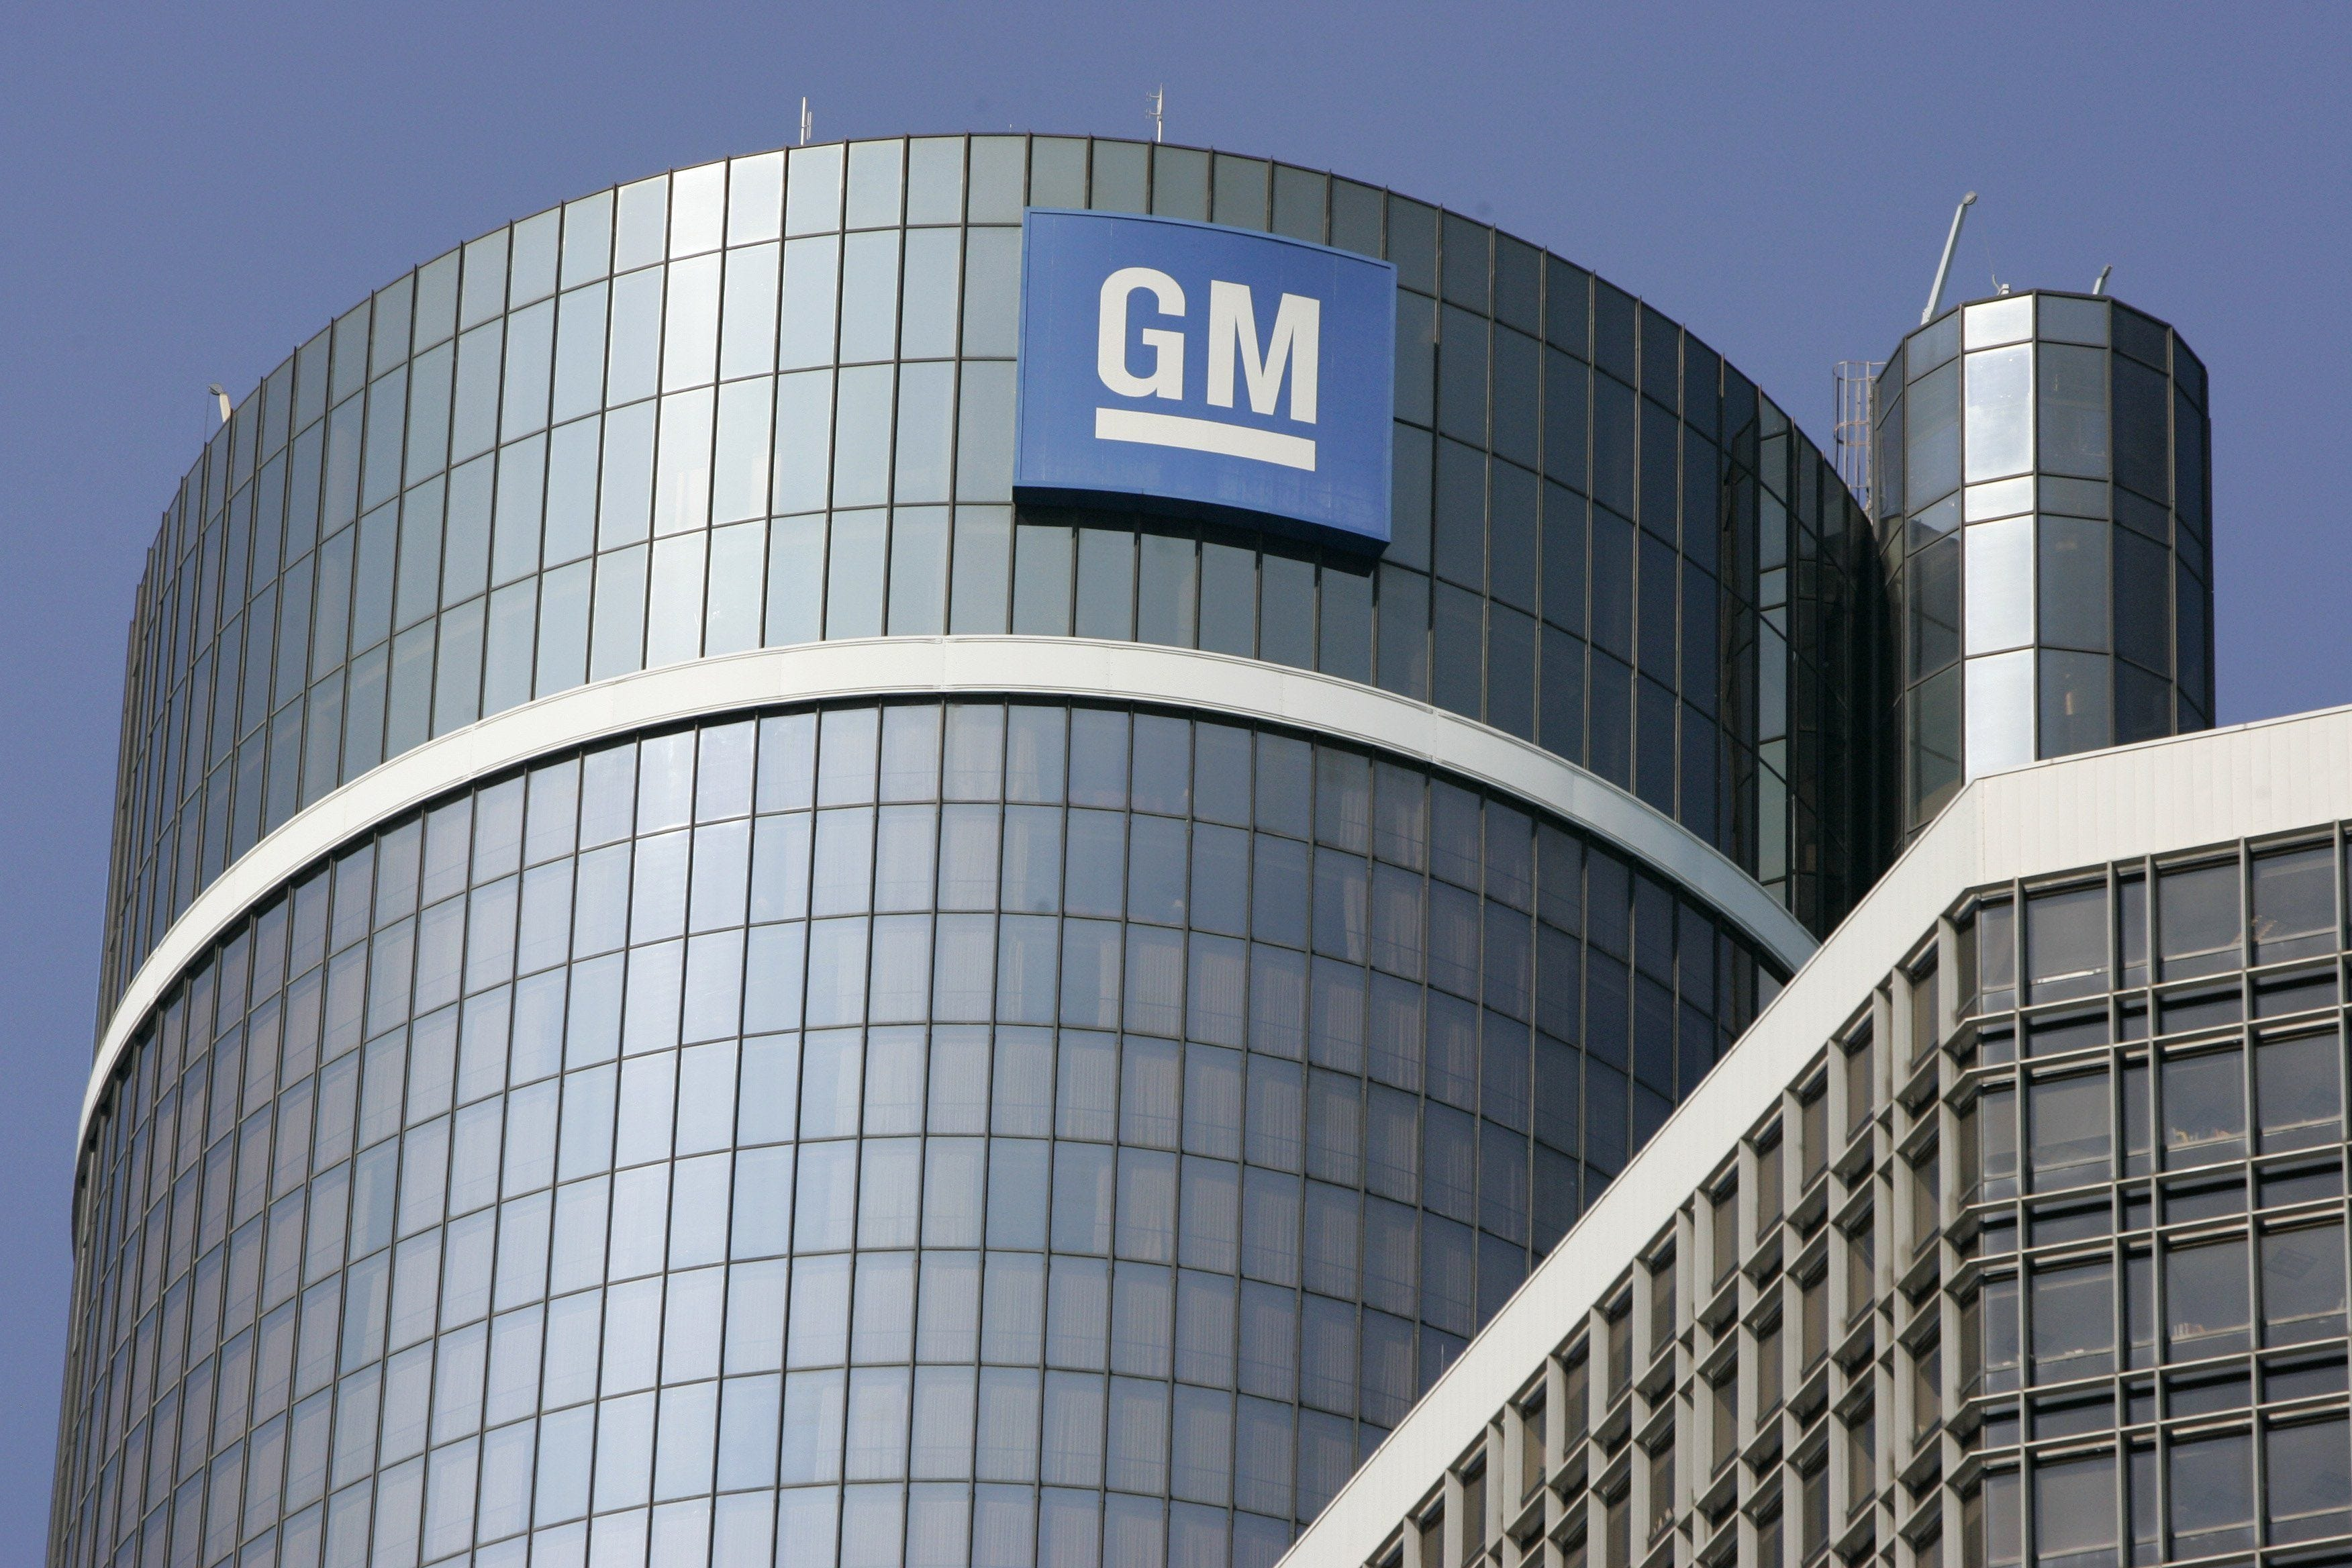 GM says silent pause on Juneteenth shows support for Black community